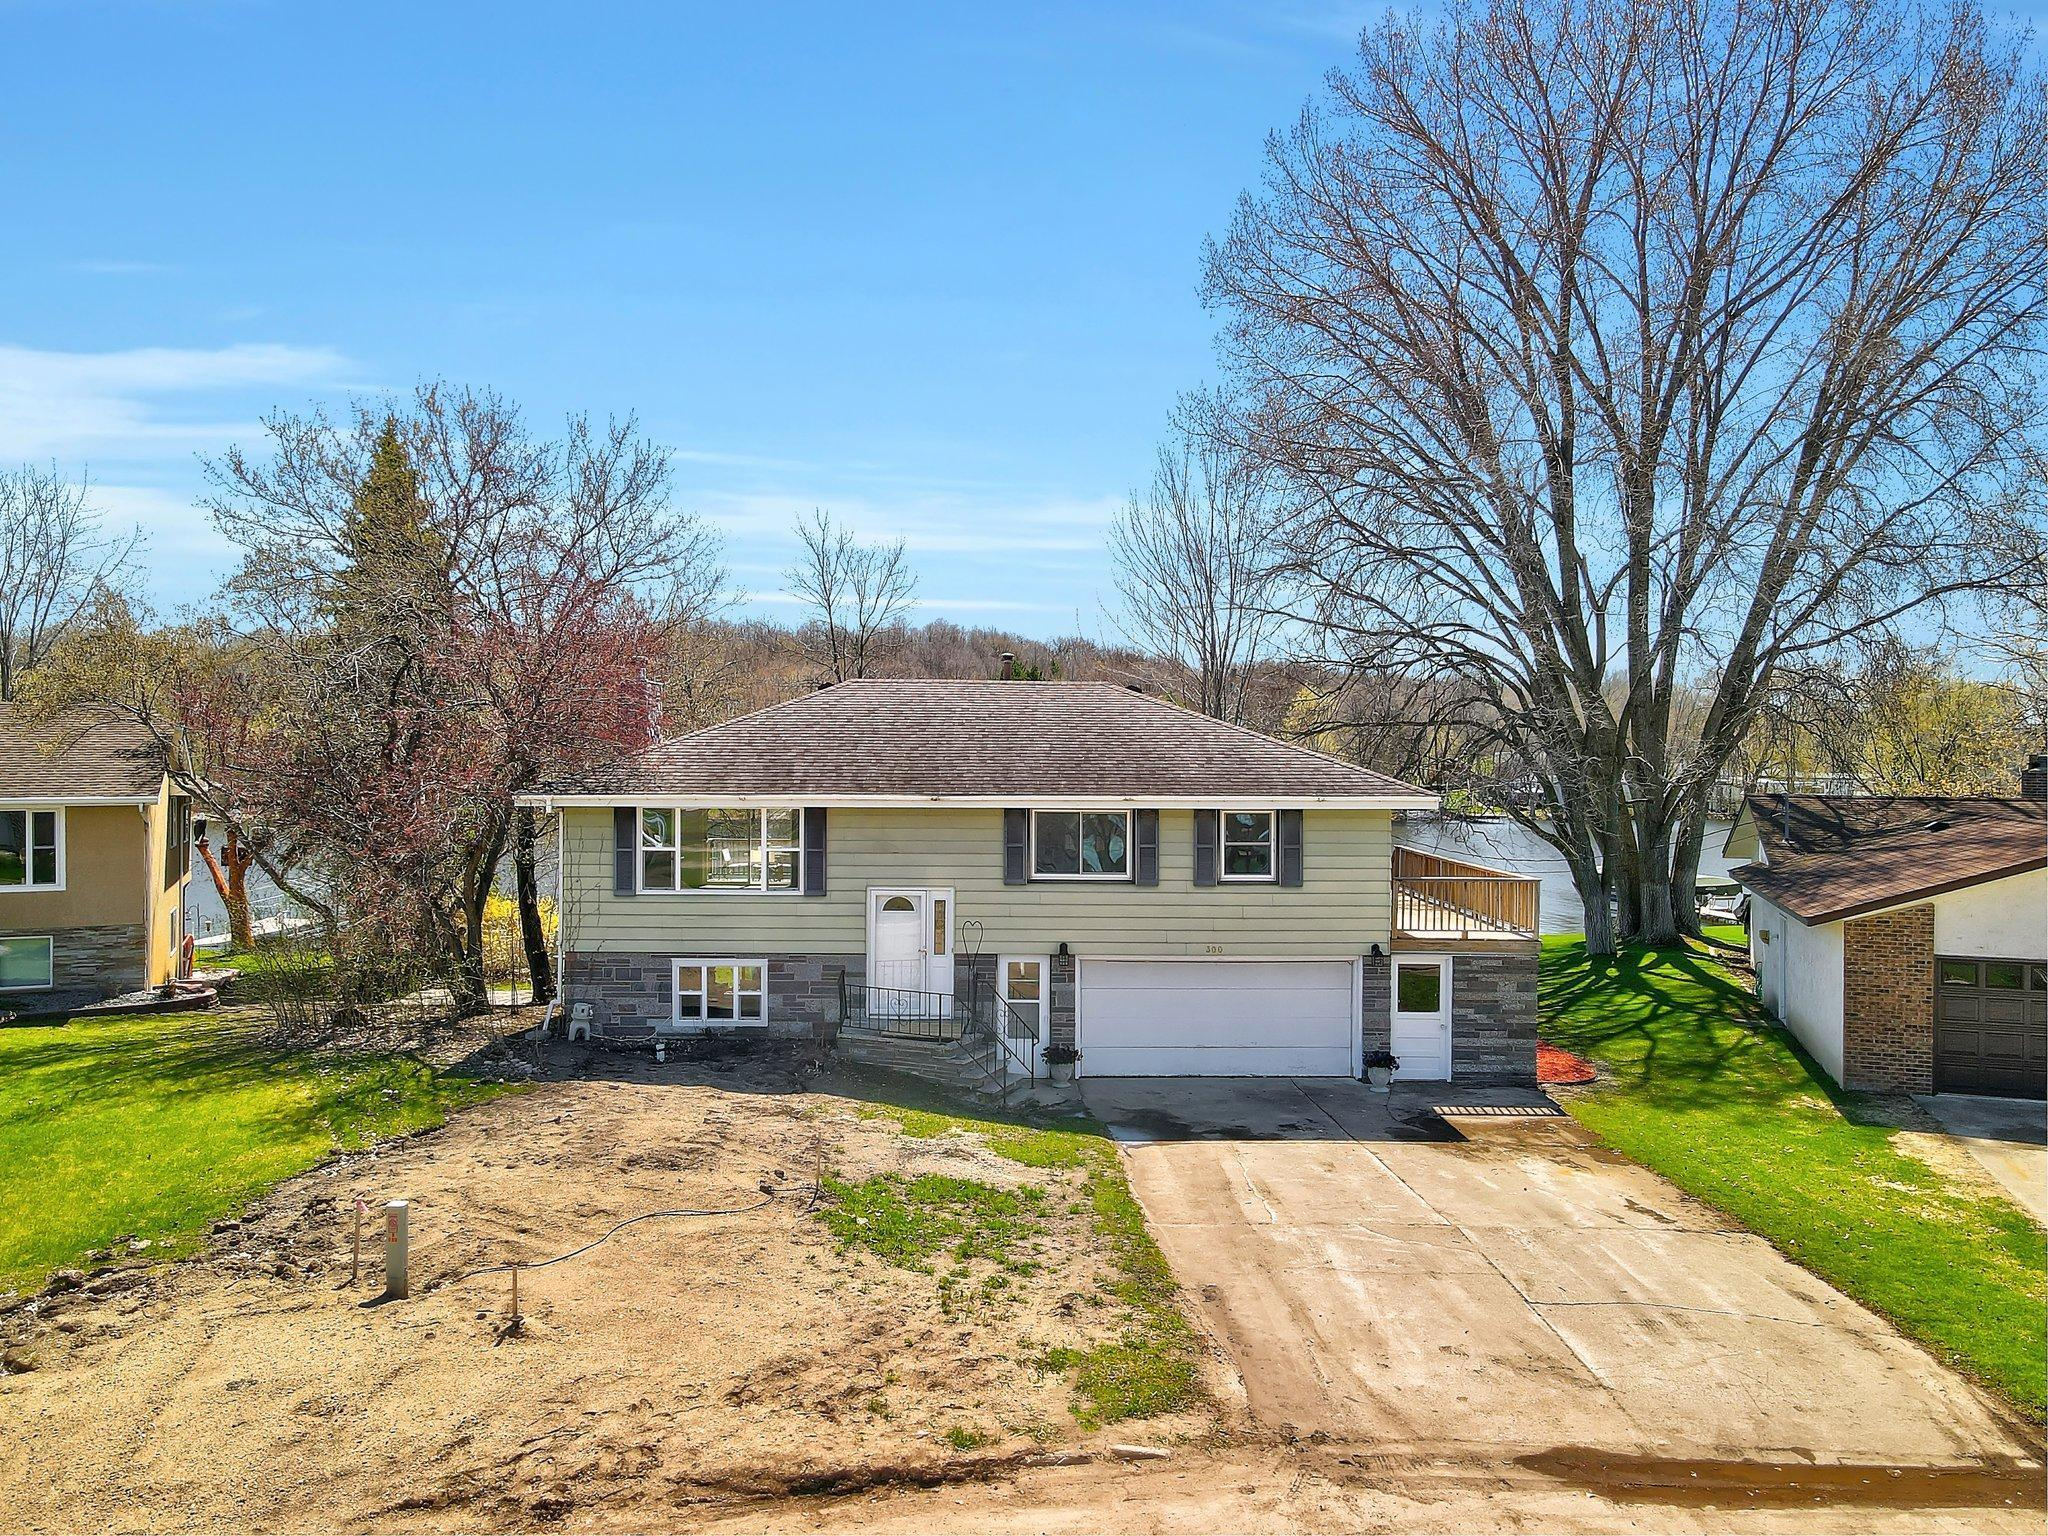 What an amazing and rare opportunity to own this fantastic home right on the Sauk River!  Roughly 104 ft of shoreline and your own dock to launch from.  Gorgeous views and river access yet just minutes from shopping and town center.  Extensive remodeling, new quartz kitchen countertops, main-level plank flooring.  Walkout basement with bar area.  Nice bright and open floorplan with almost 2,000 sq ft finished.  2011 saw a new roof and some new windows.  Most new windows in 2021 (new patio door too).  Huge back deck.  New insulated garage door to be installed soon. Sellers also replacing front door, rear door and door into home from garage. New concrete front steps to be poured when weather permits.  The home received new water main and sewer main beginning of 2021 and the front yard will be final graded and grass seeded.